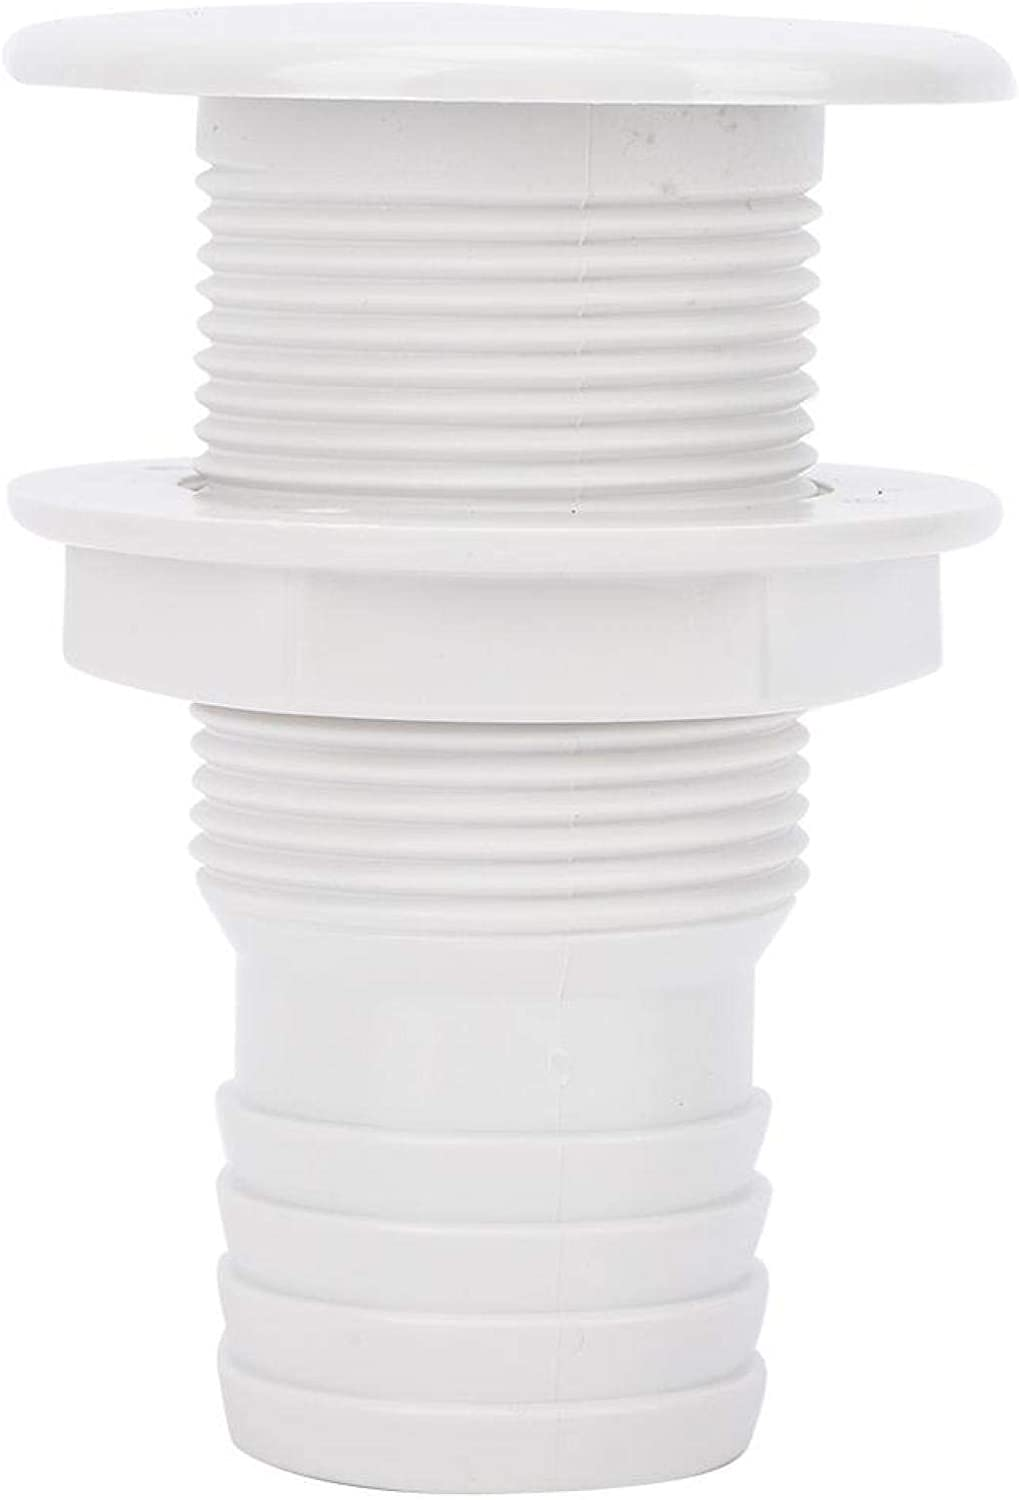 1PCS Bilge Drain Vent Useful Max 77% OFF for 2 Yacht Ship Using On inches Popular overseas